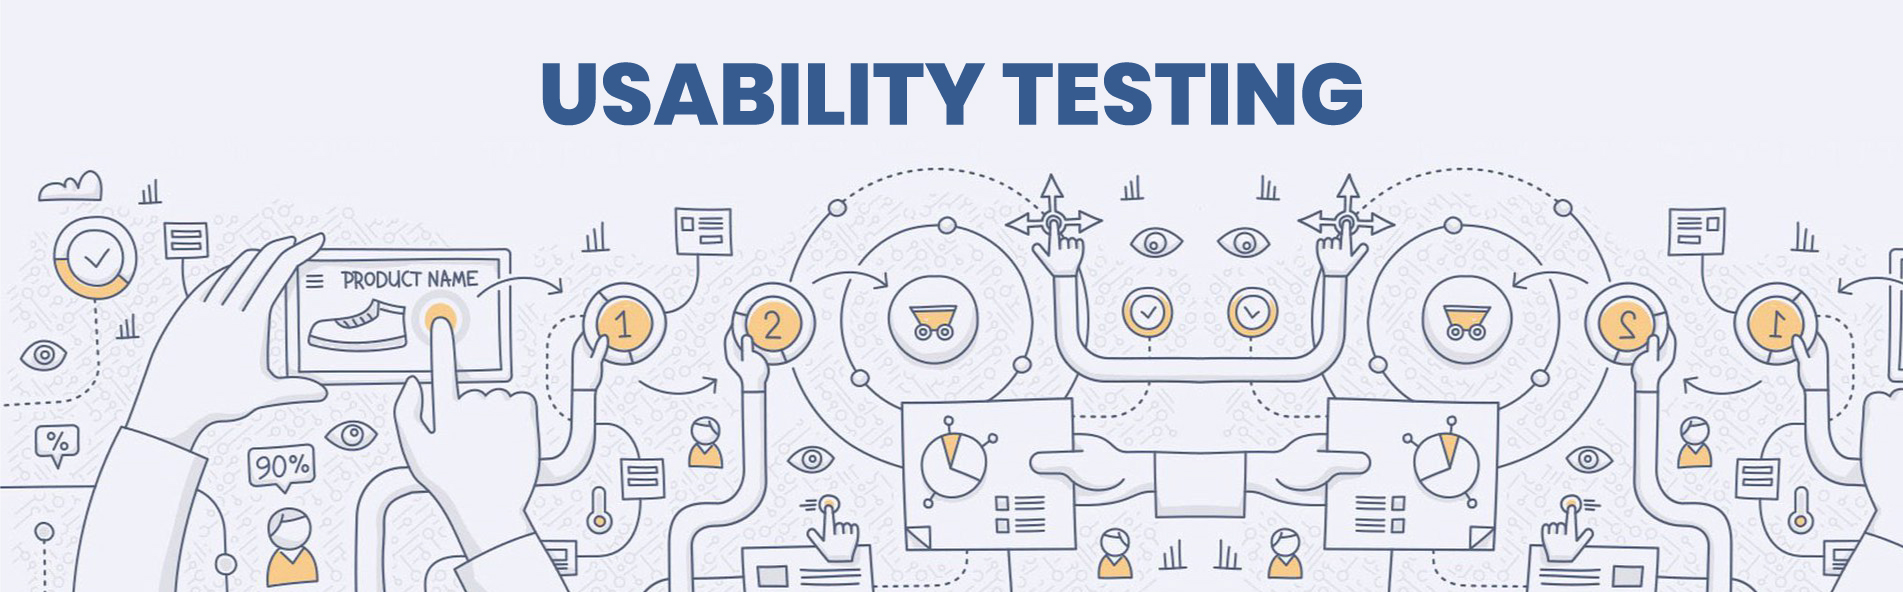 Top 6 Benefits of Usability Testing